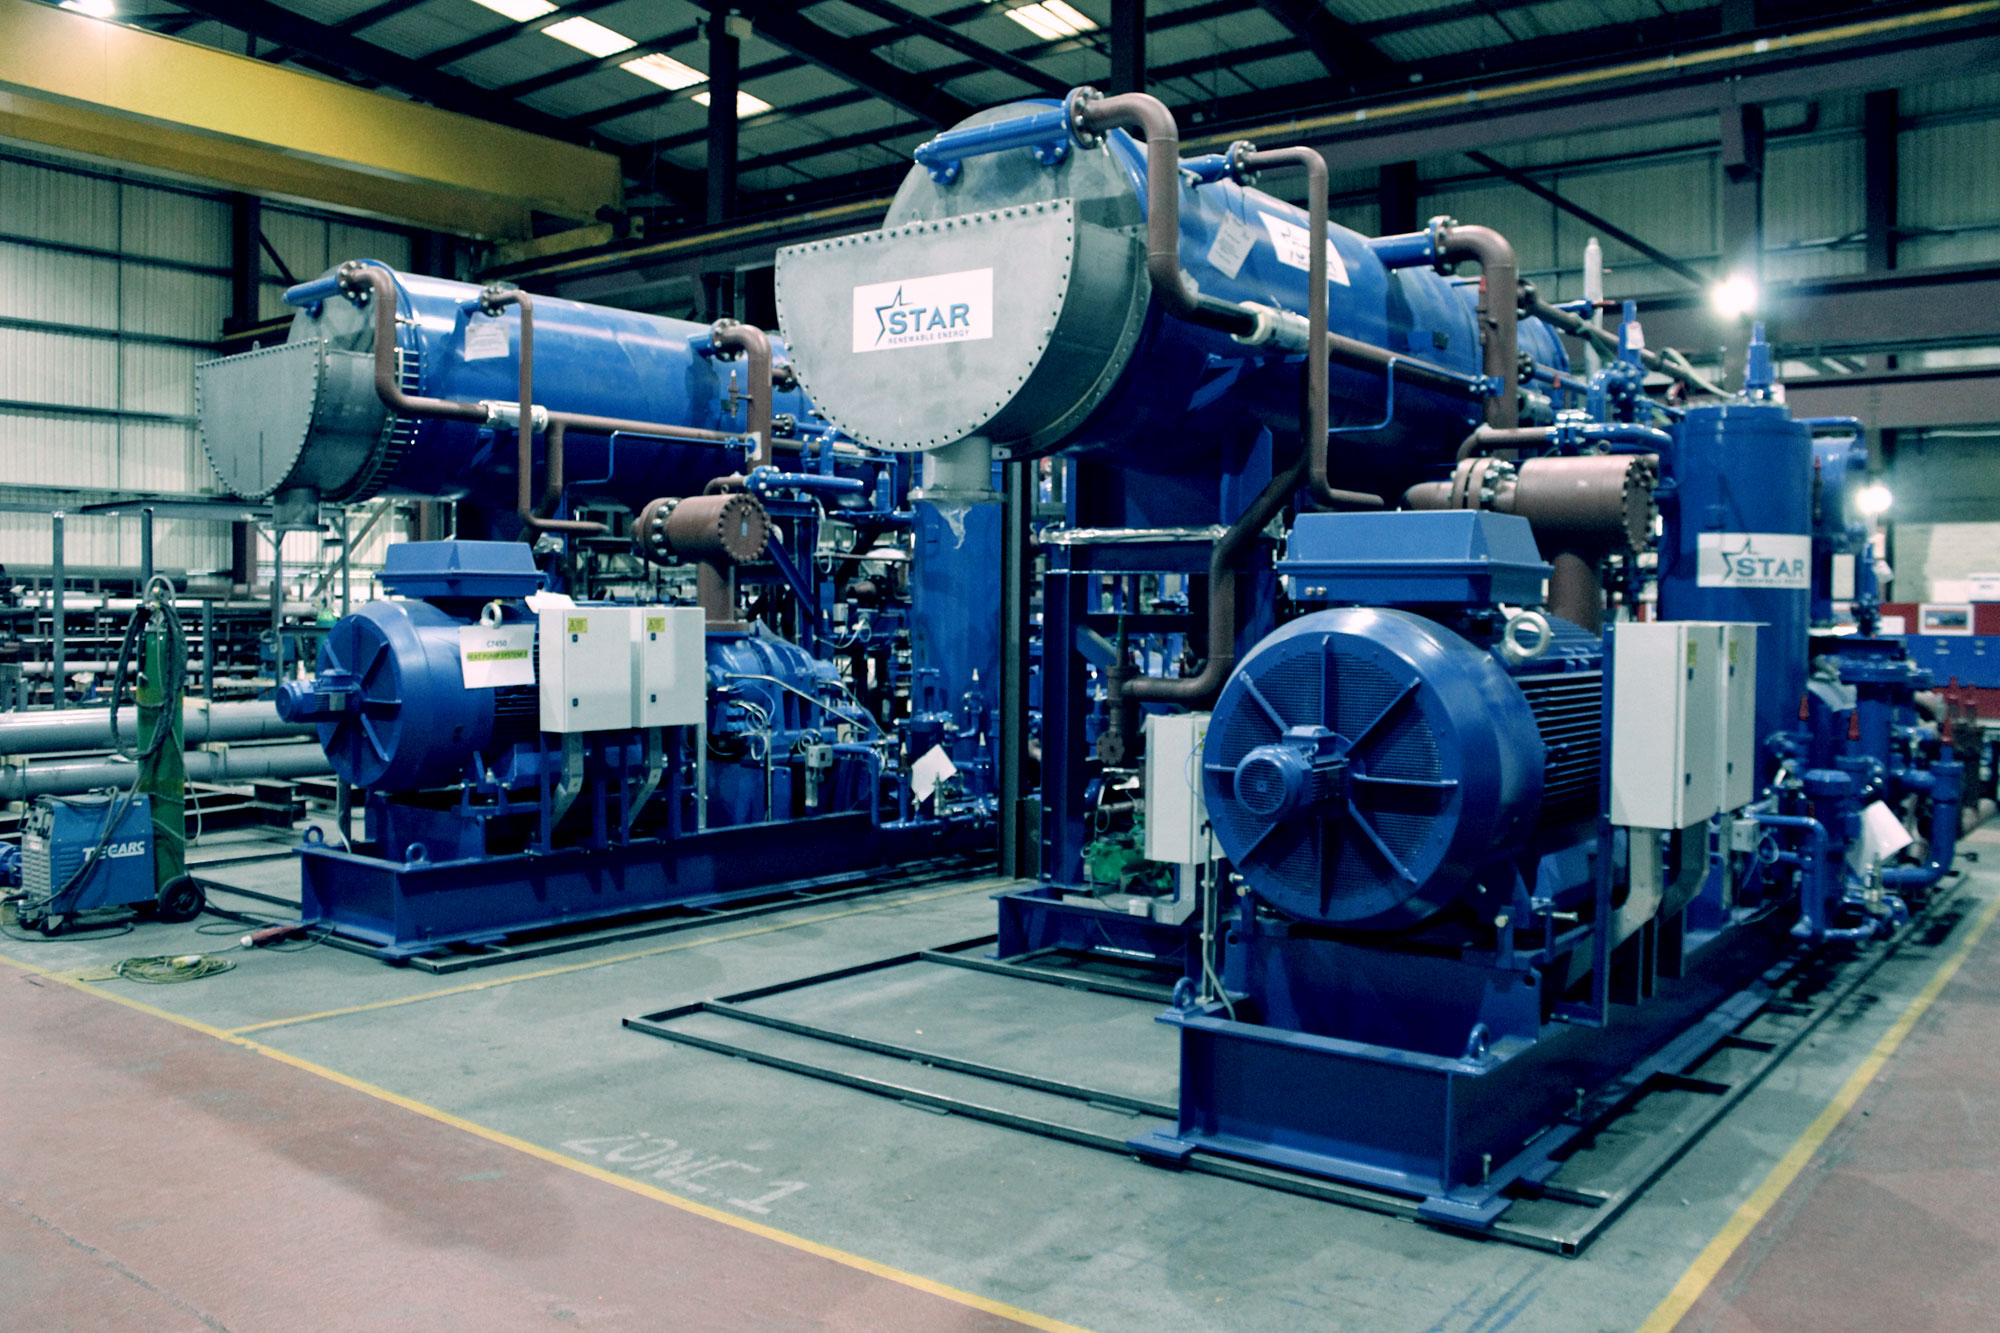 industrial heat pump maintained by star renewable energy